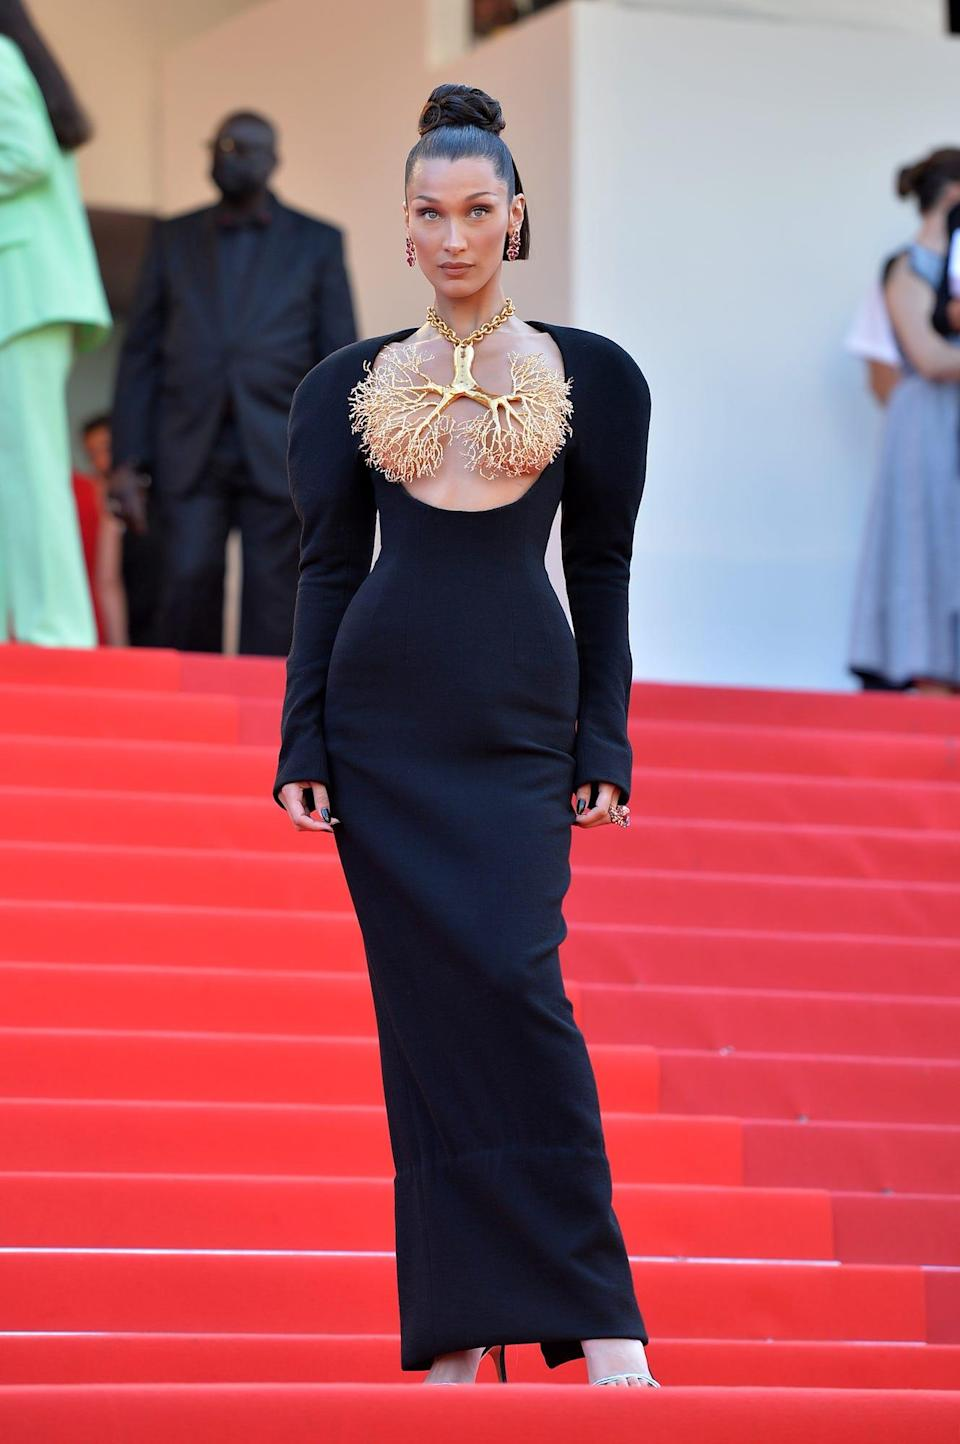 Bella Hadid at the 2021 Cannes Film Festival.